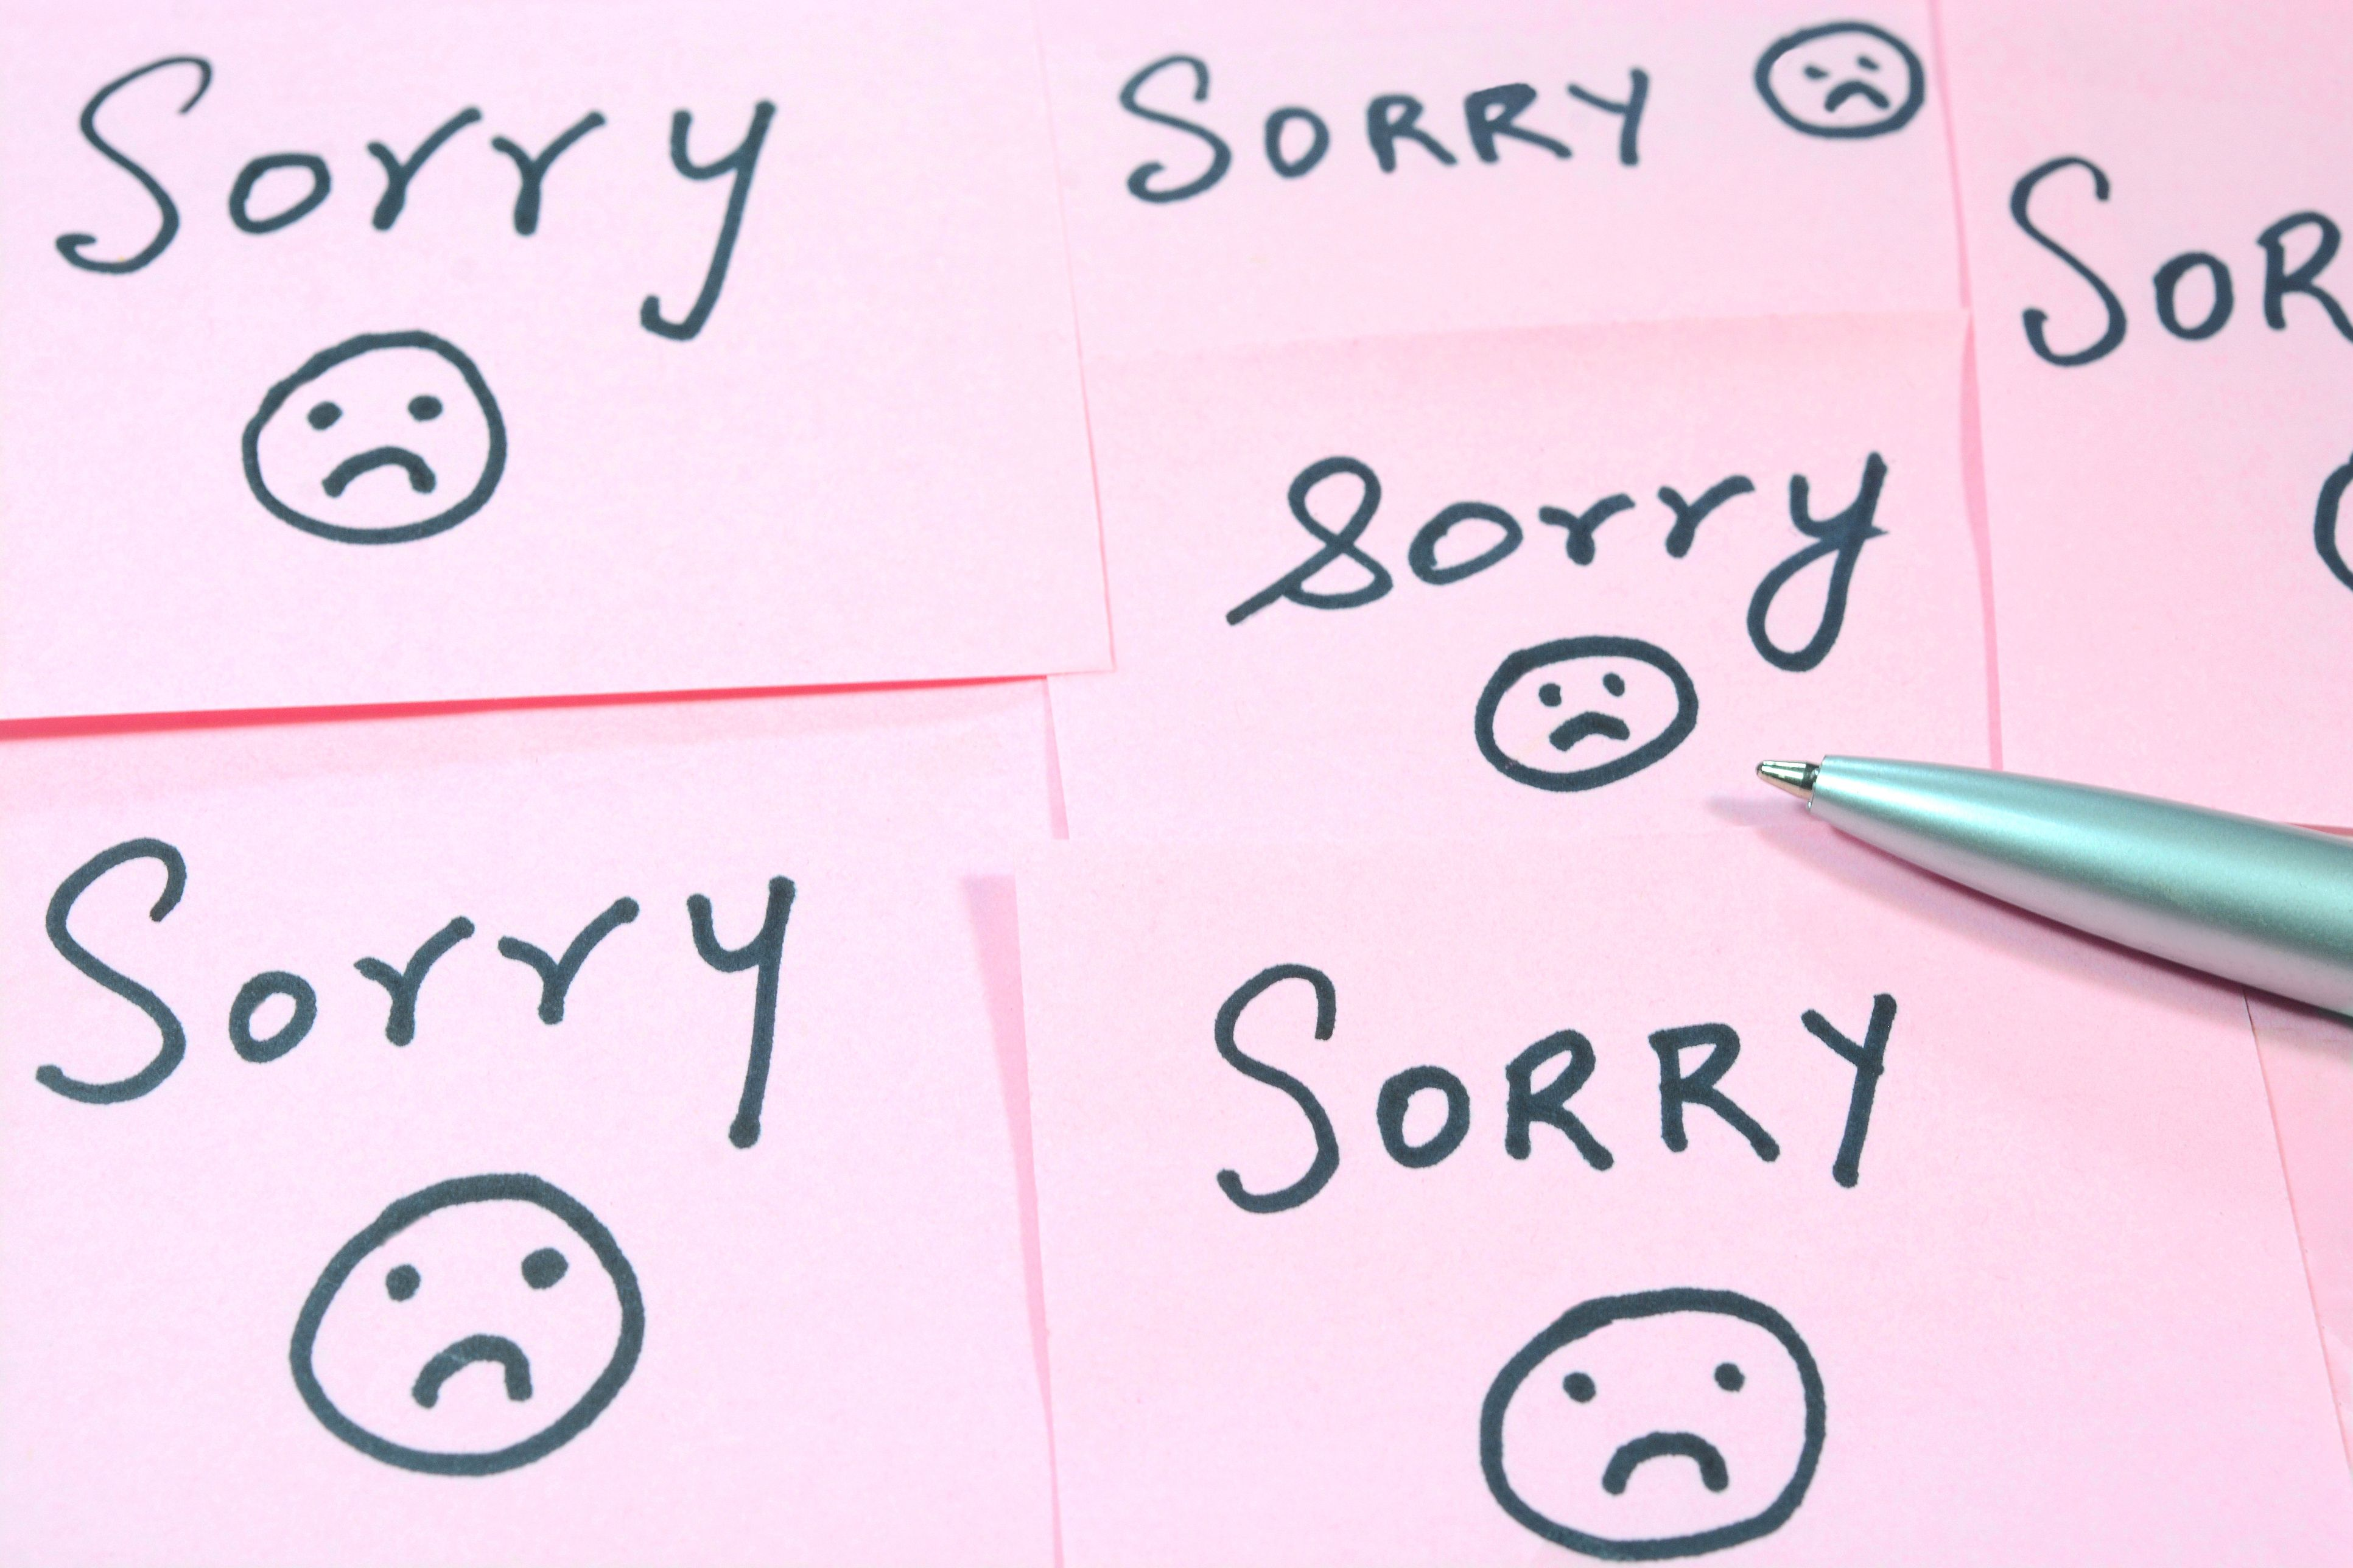 Creative ways to say sorry